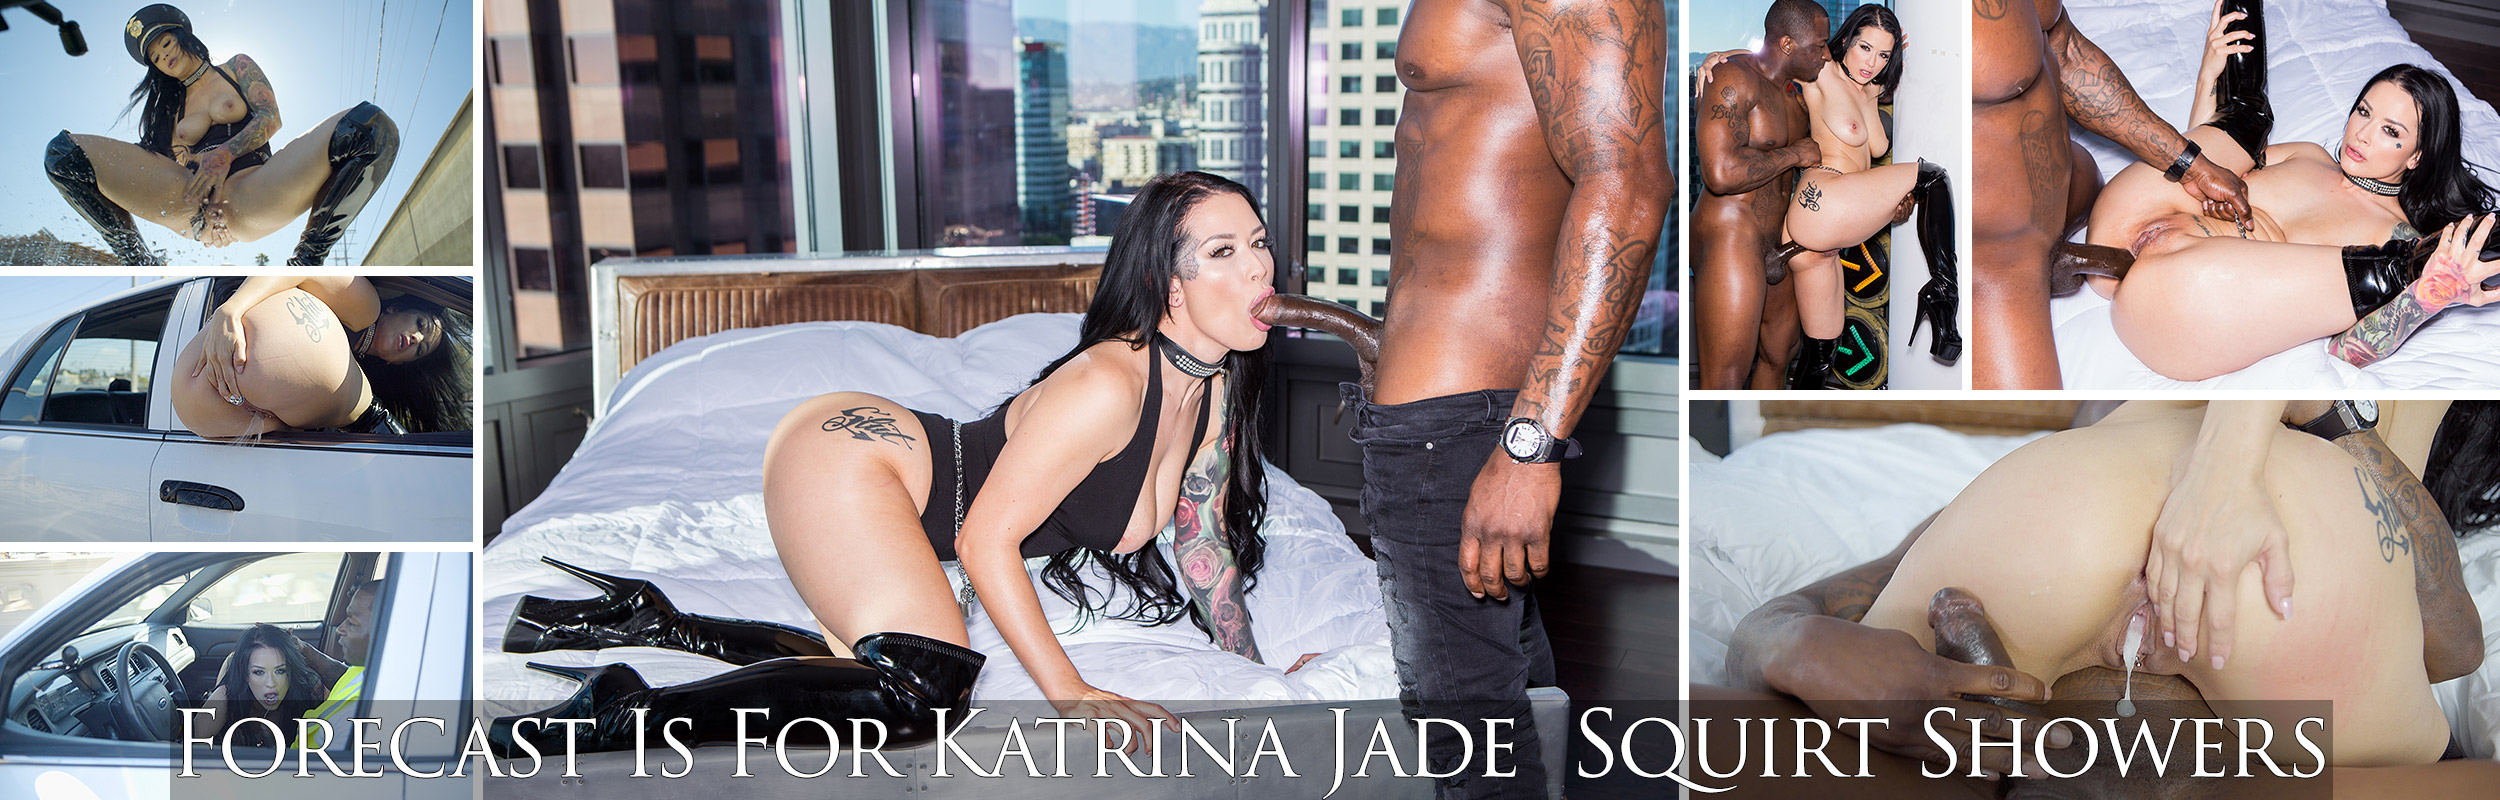 Forecast Is For Katrina Jade Squirt Showers